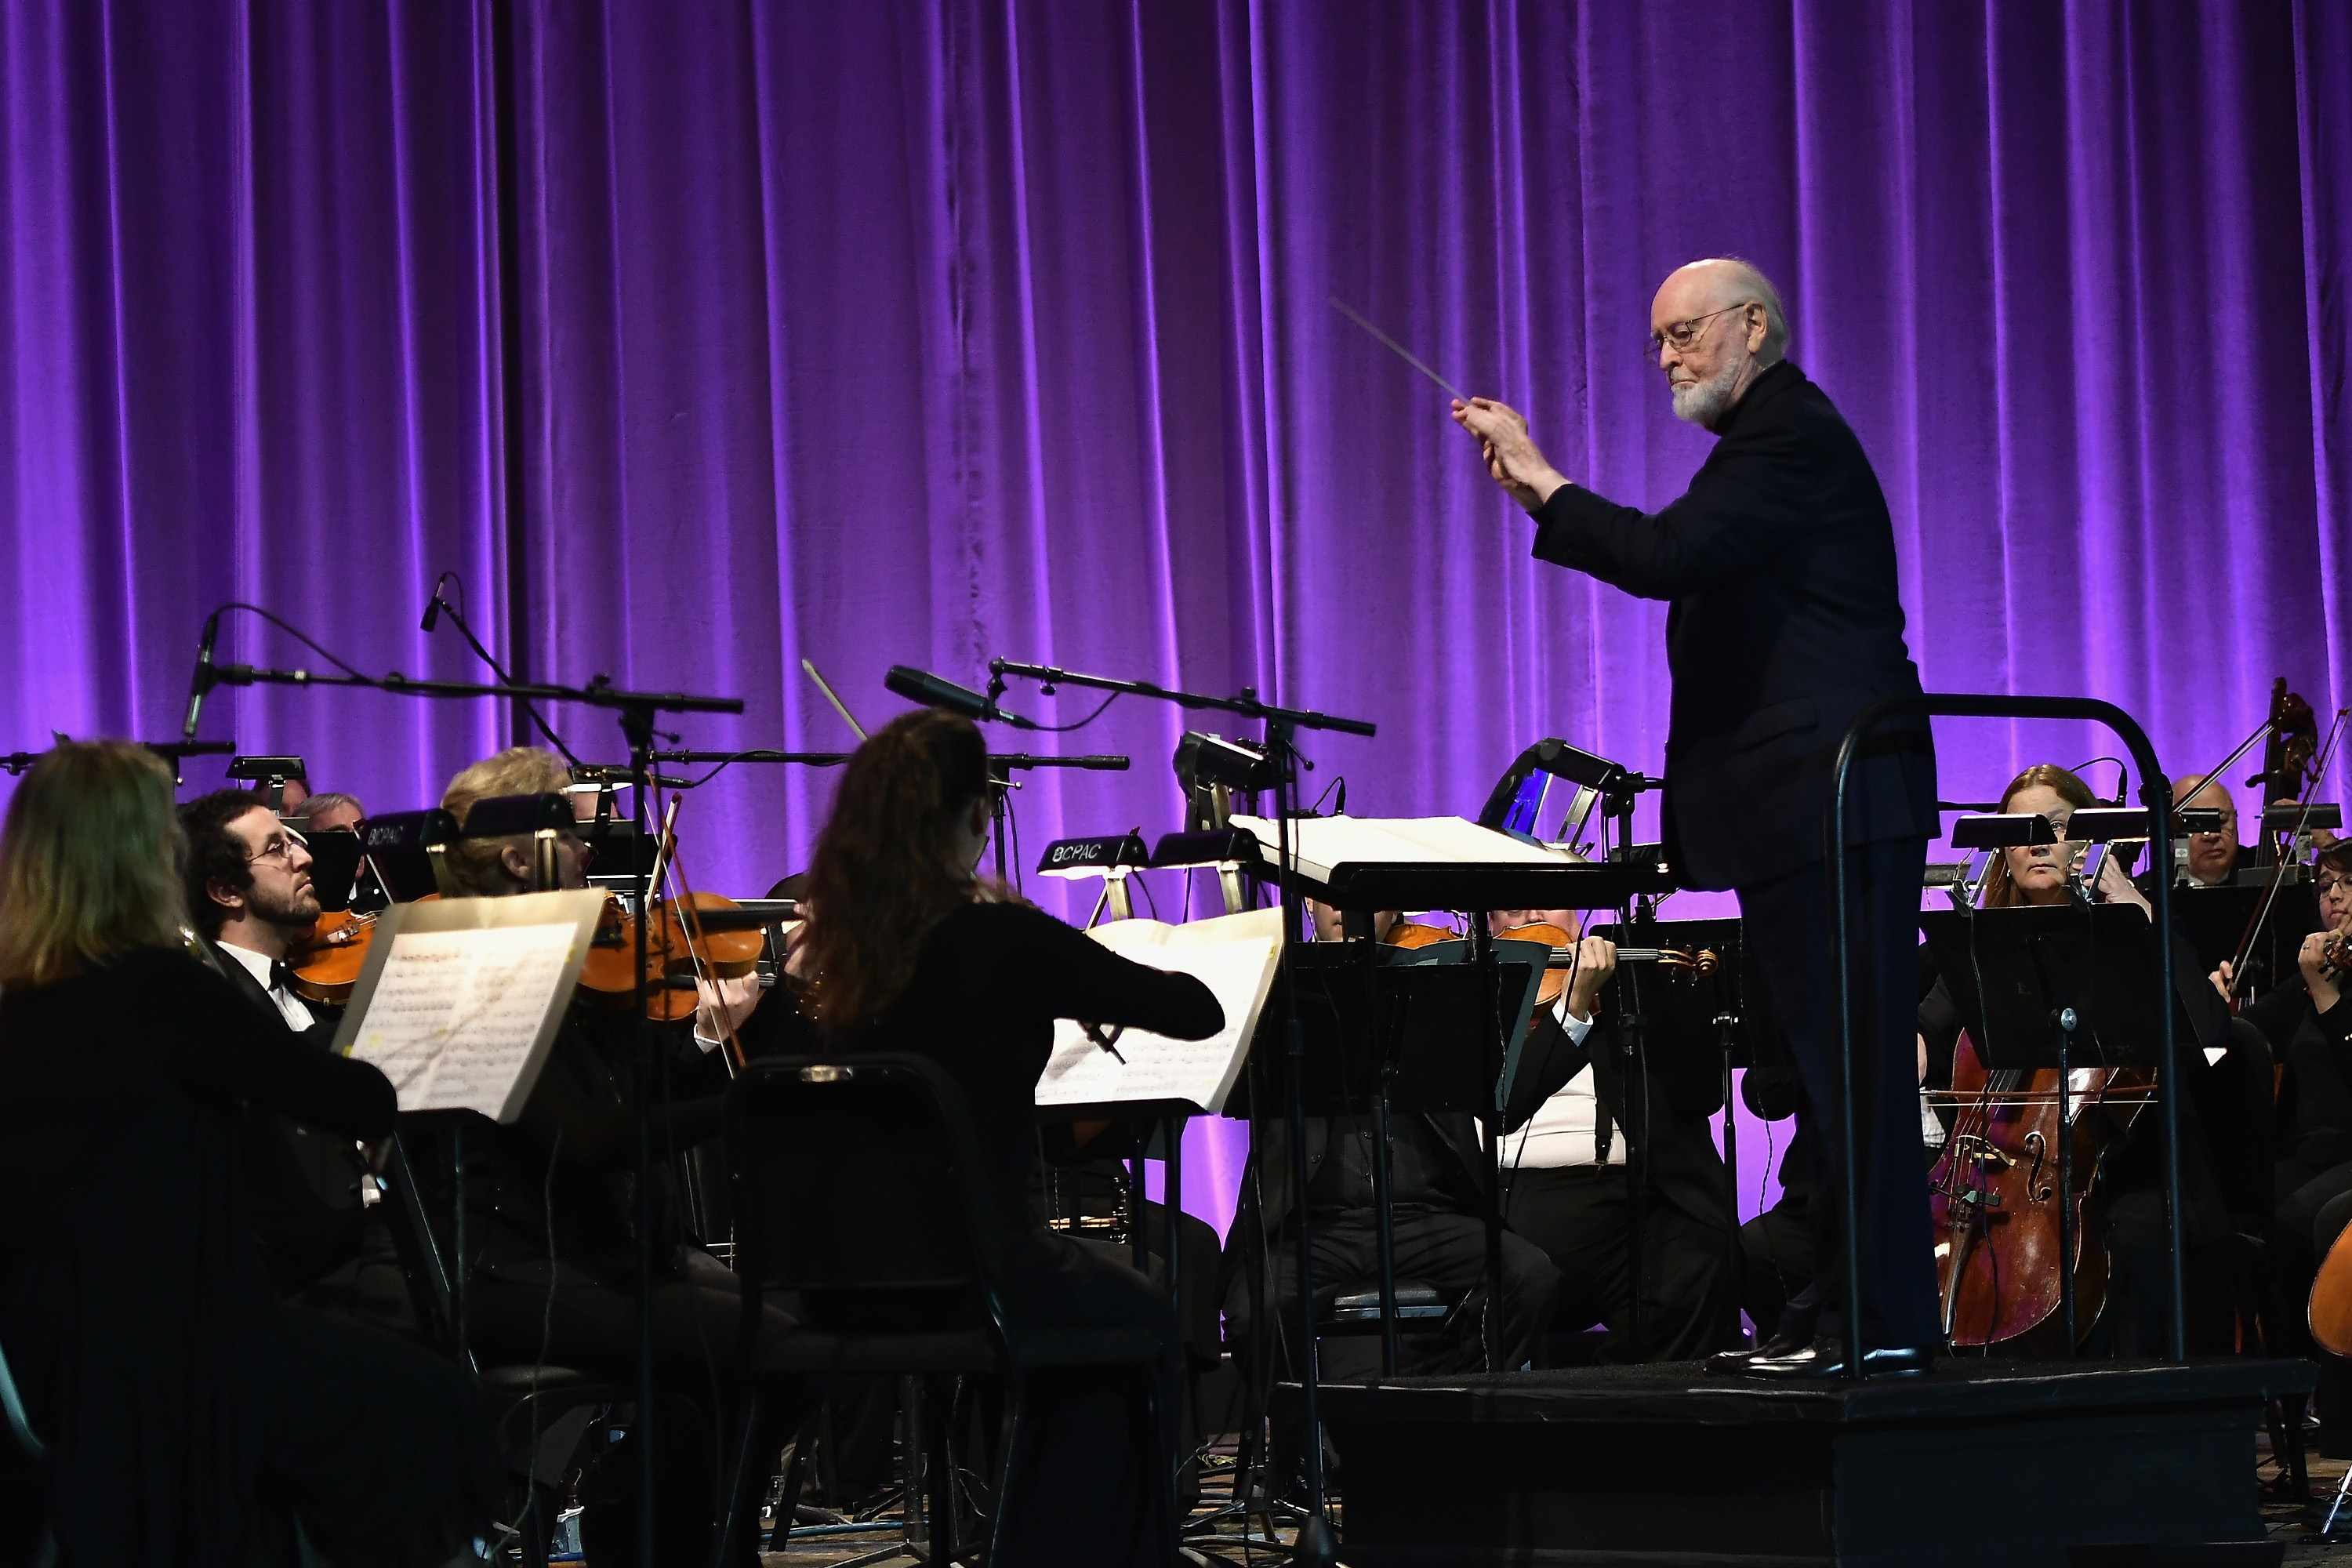 ORLANDO, FL - APRIL 13:  John Williams attends the Star Wars Celebration Day 1 on April 13, 2017 in Orlando, Florida.  (Photo by Gustavo Caballero/Getty Images)